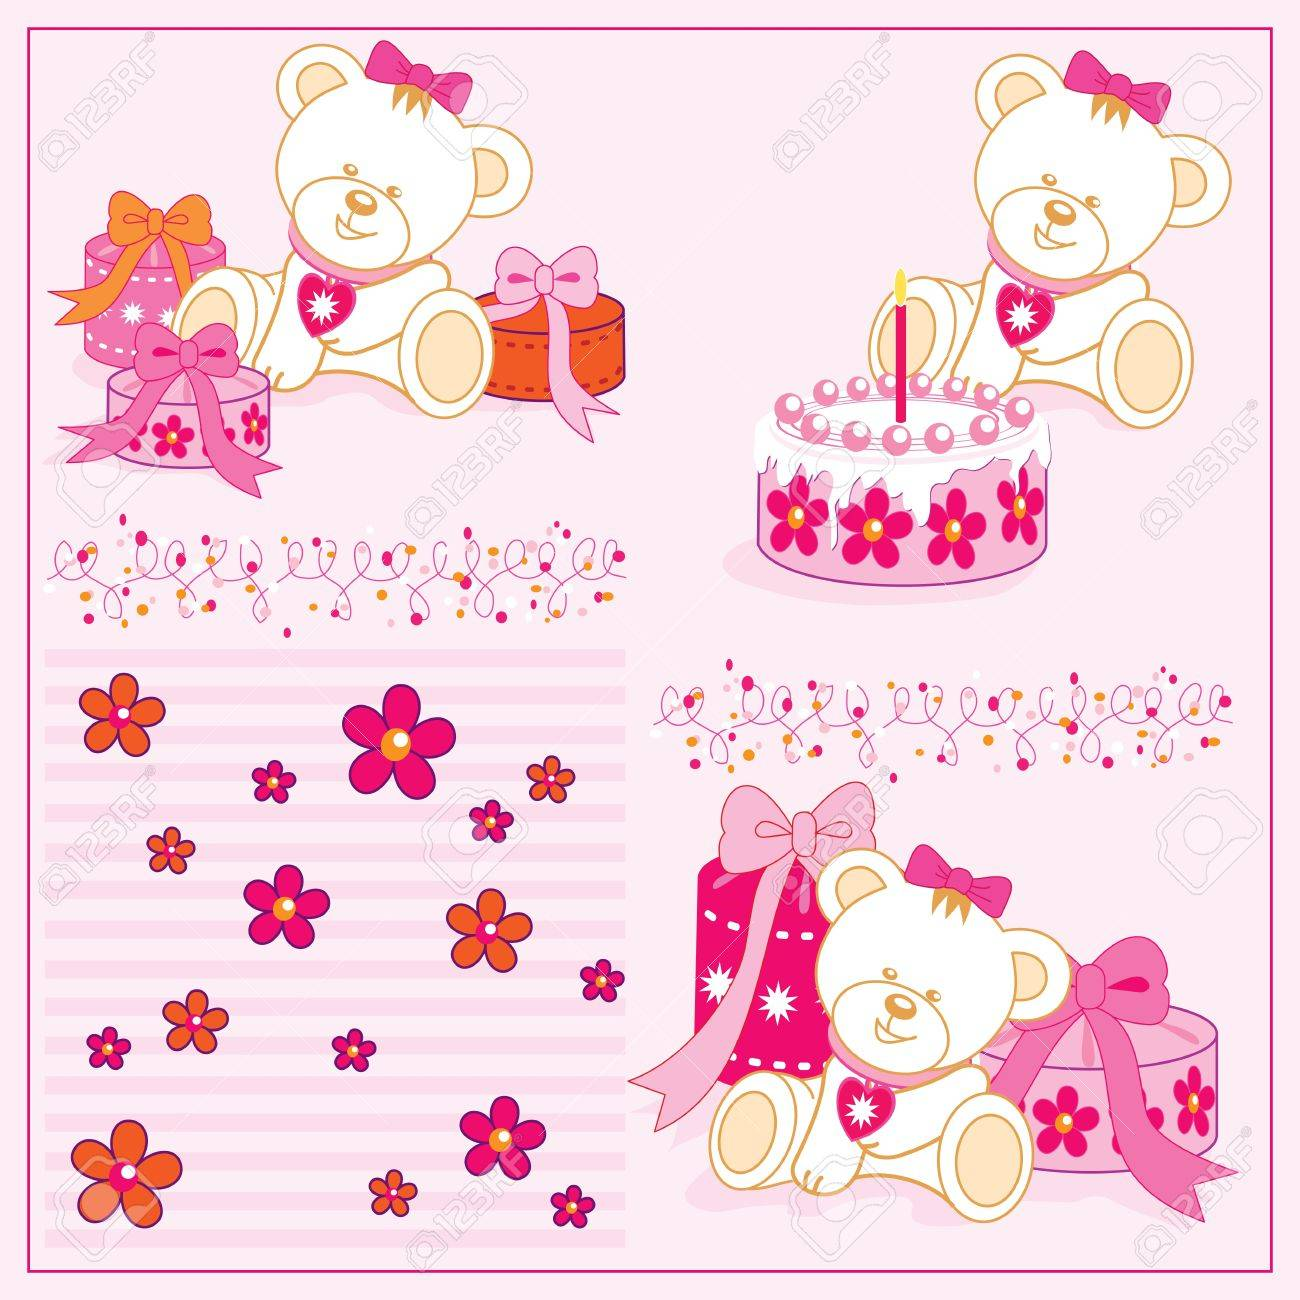 white girl teddy bear, with cake, gifts, illustrations Stock Vector - 14410184